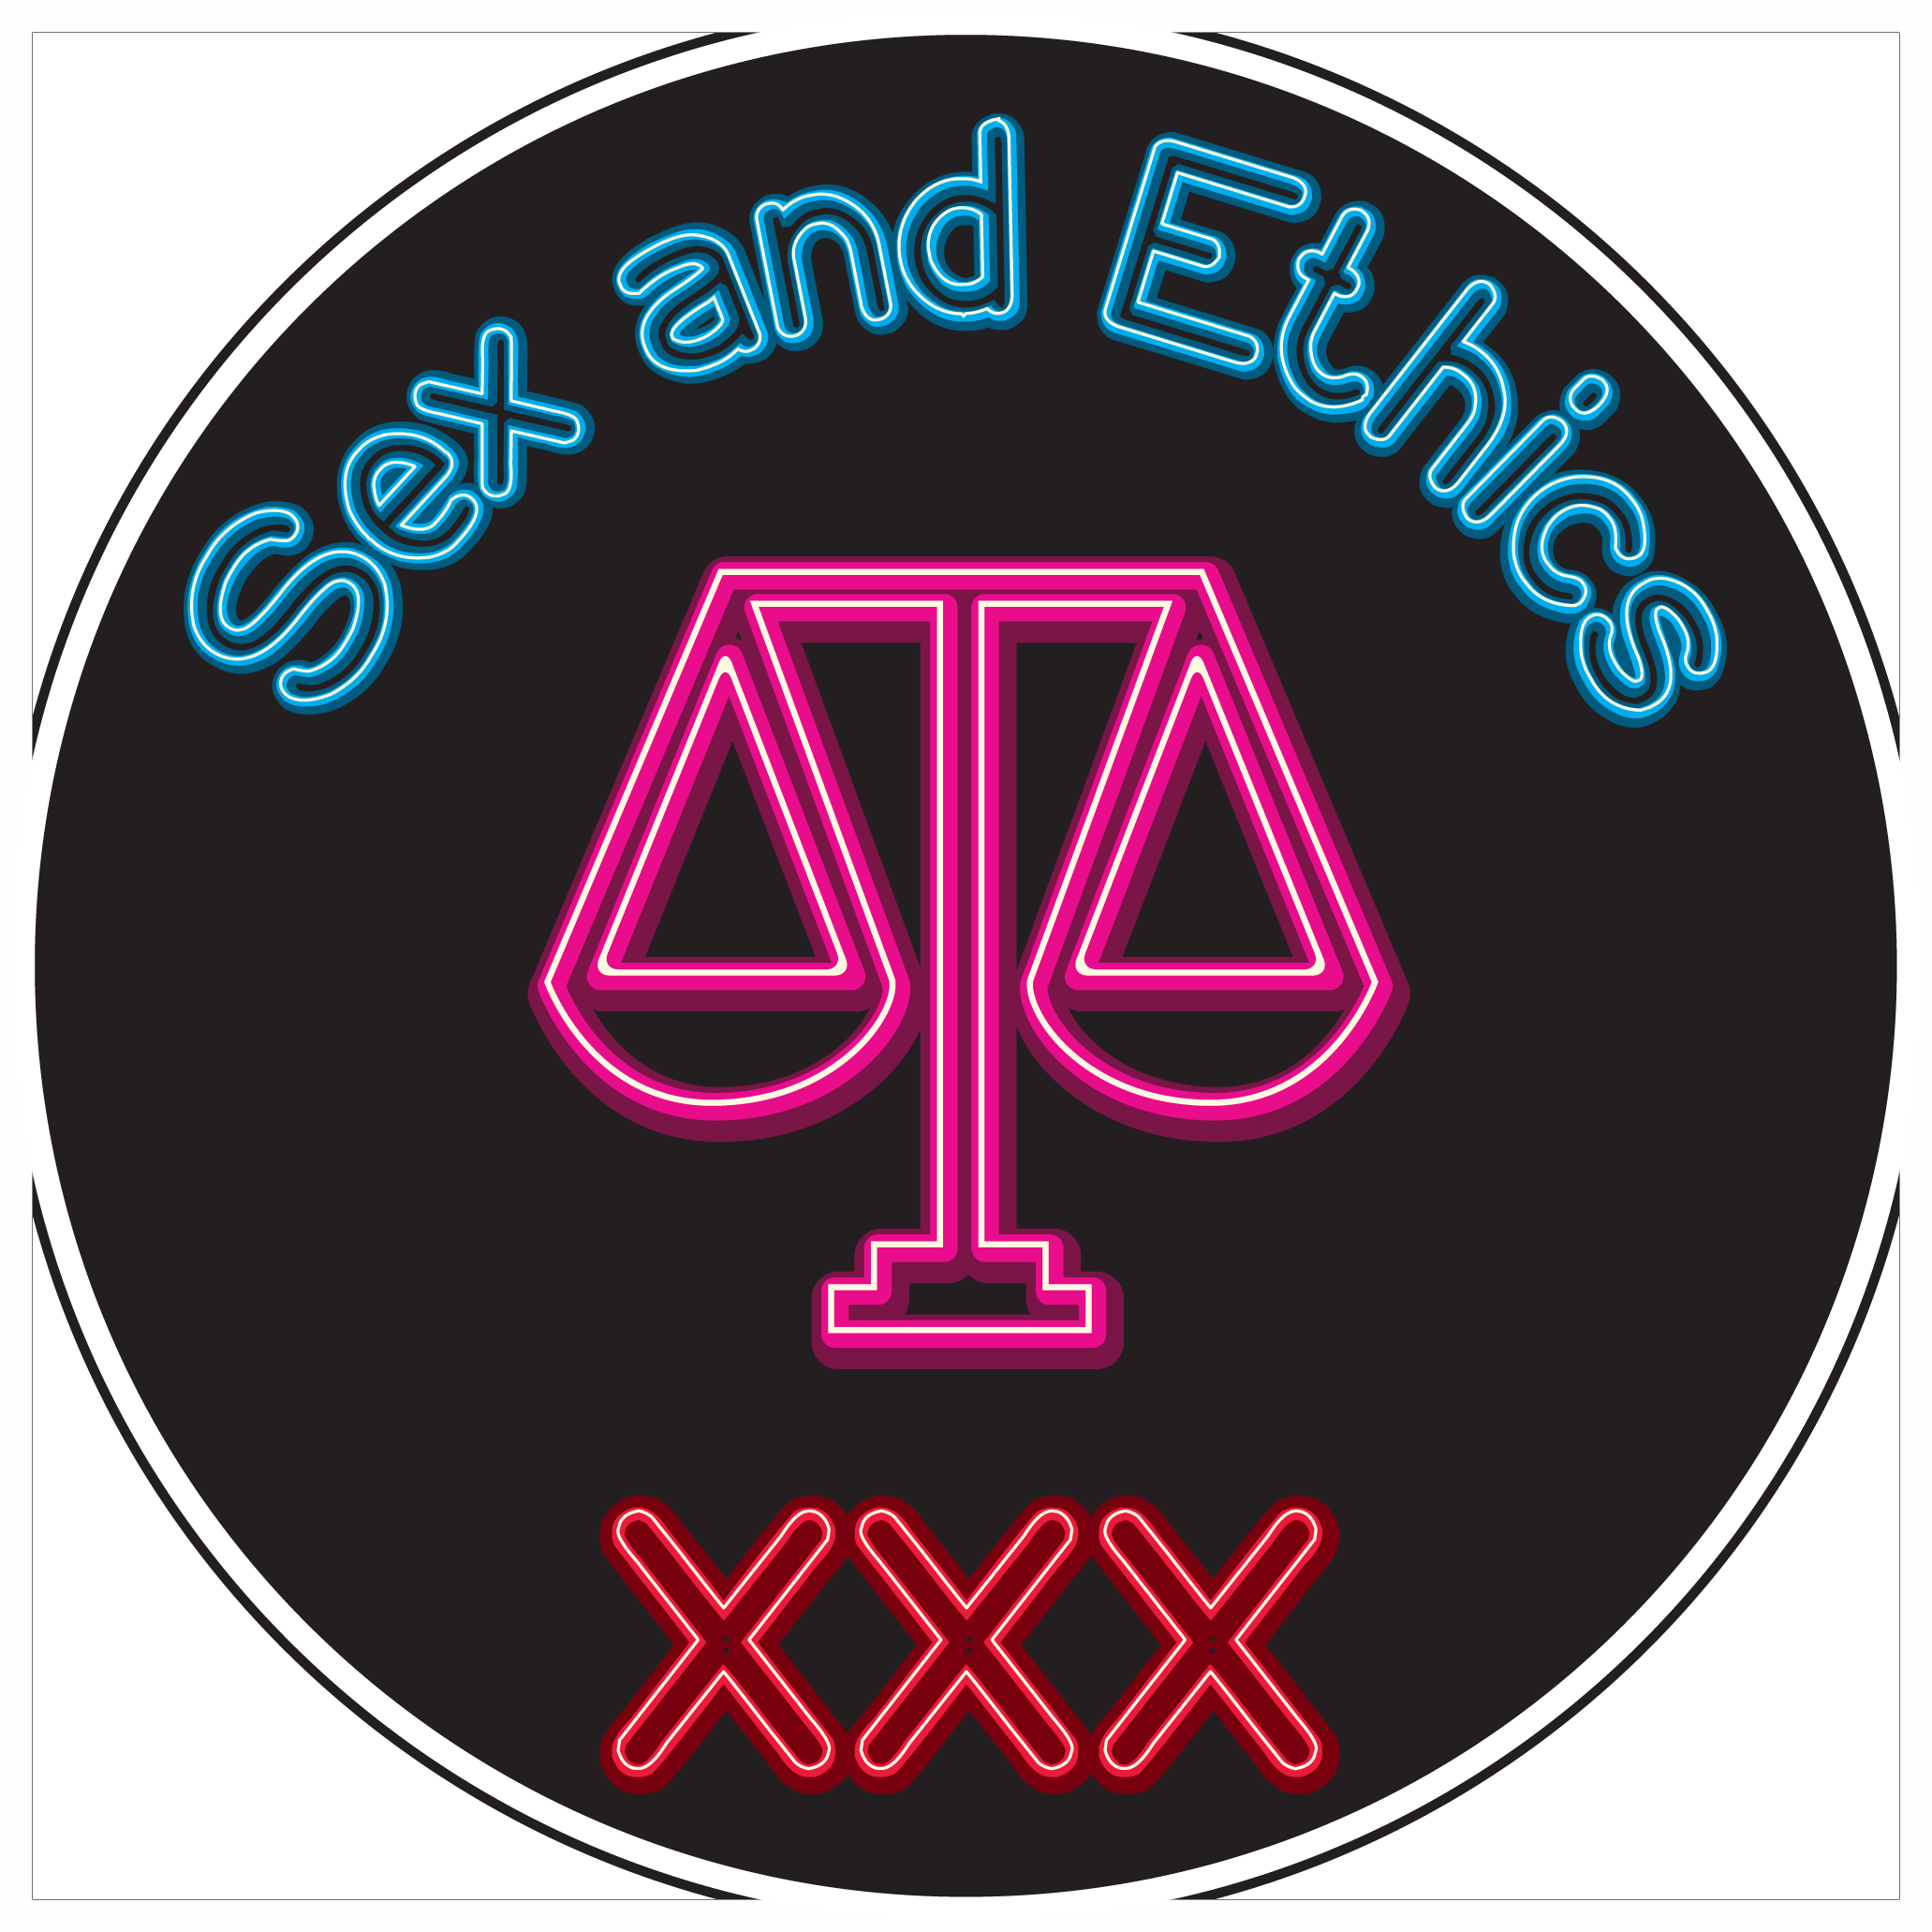 SexAndEthicsLogo_Podcast_1000x1000px copy.png